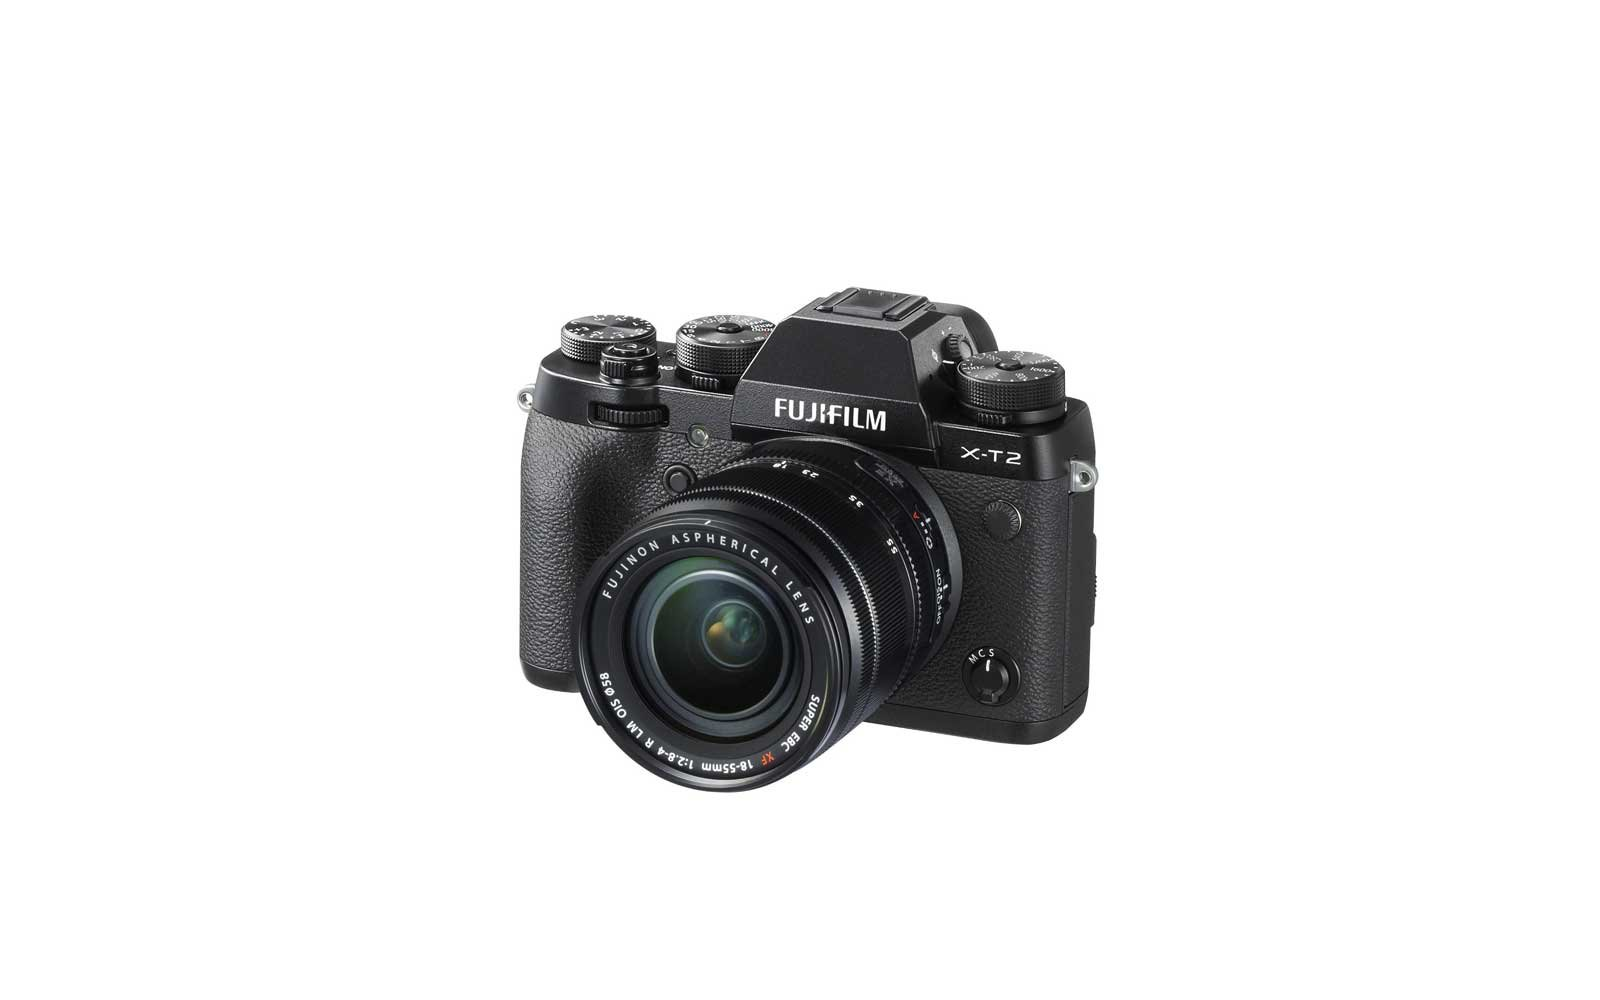 Fujifilm Xt2 Mirrorless Camera